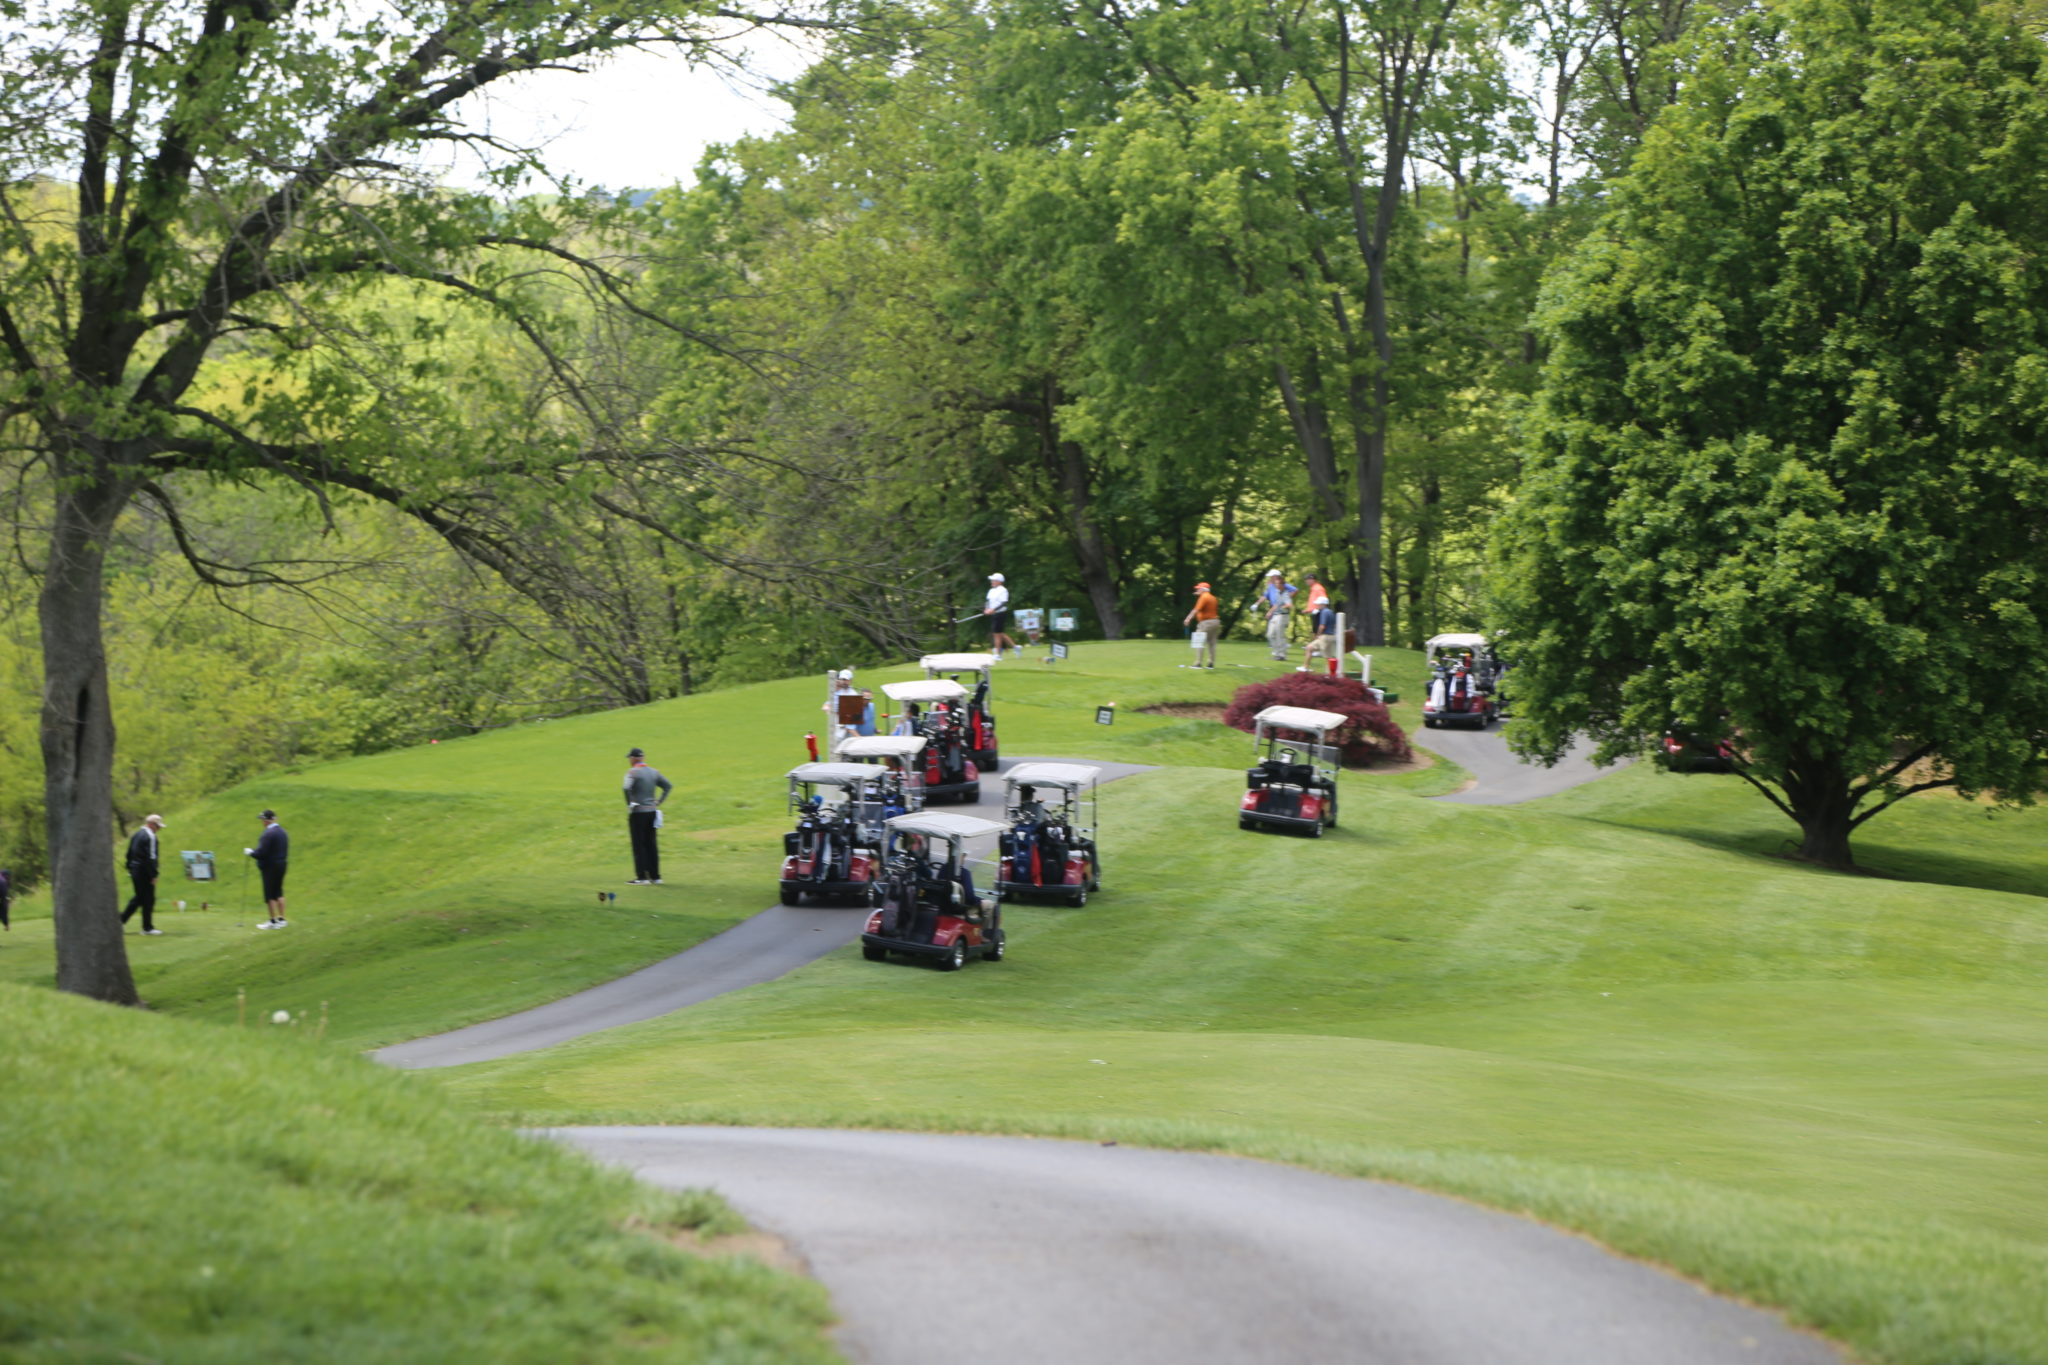 view of golf course with golf carts